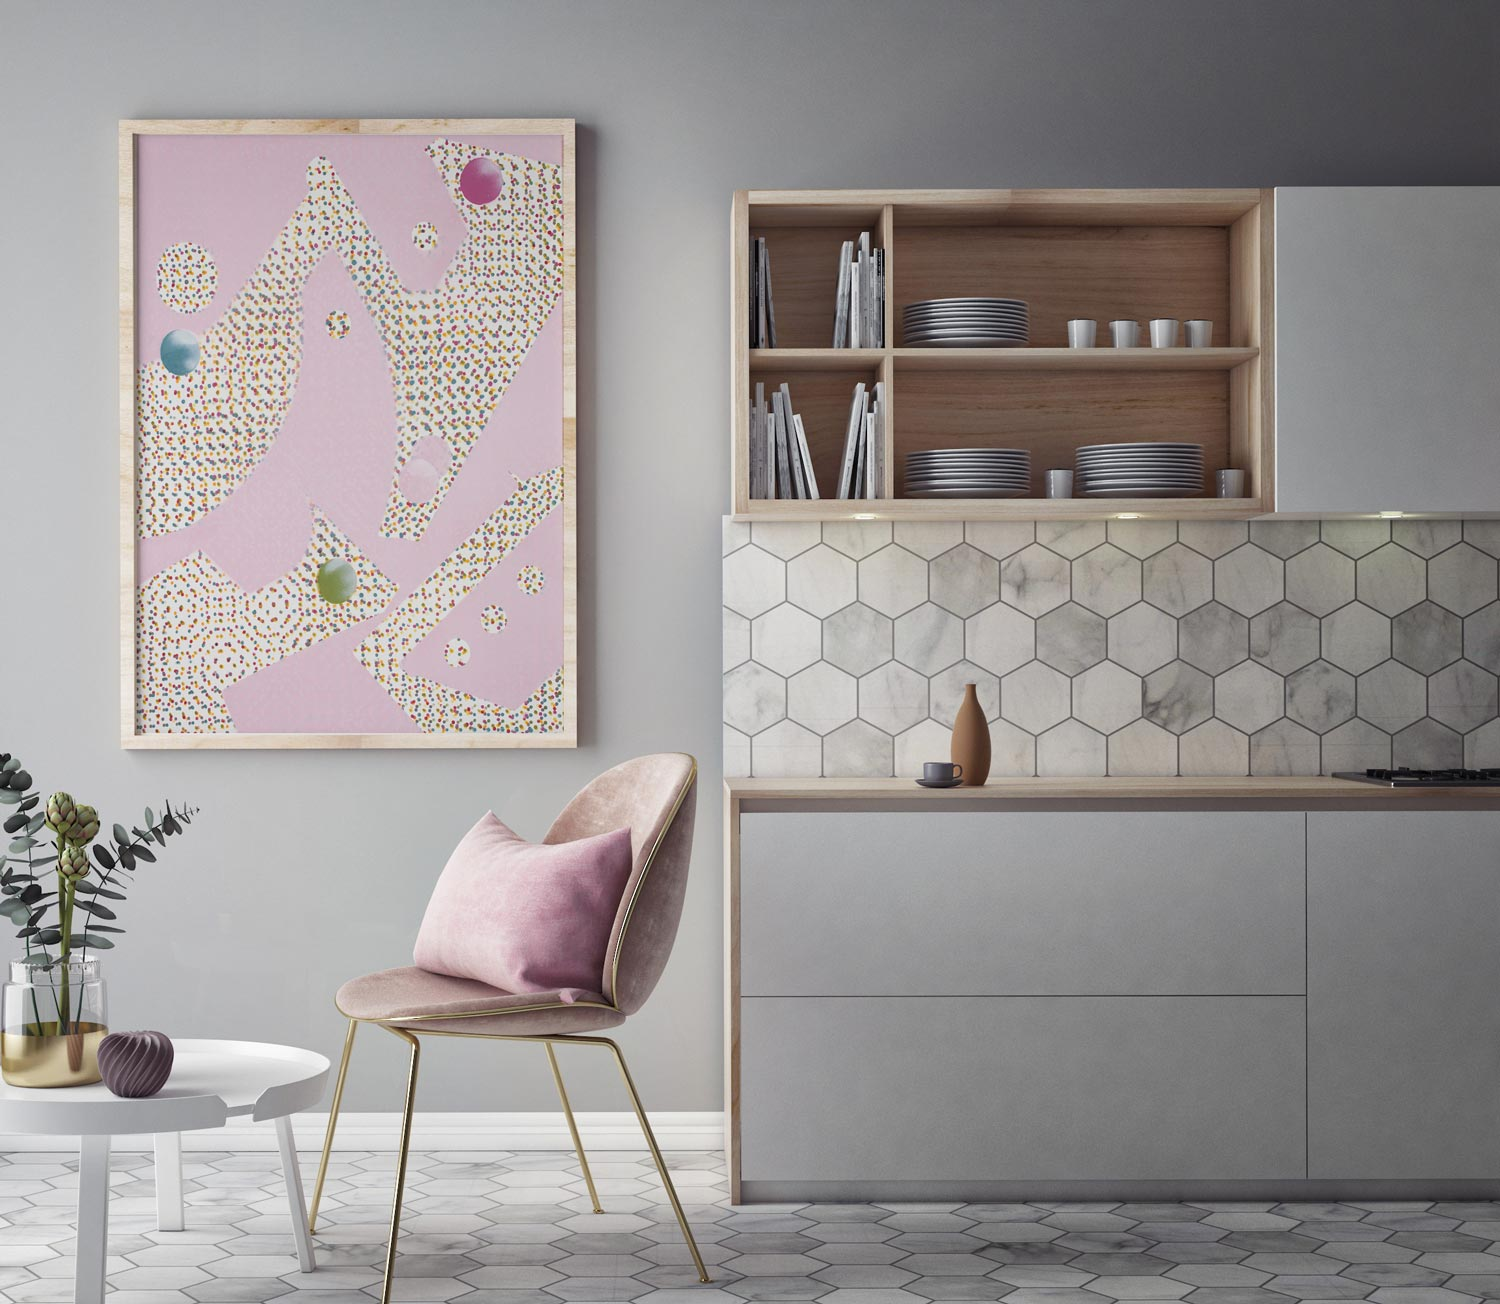 It's Raining Dots - Find Canvas and Paper Prints at SaatchiArt.com